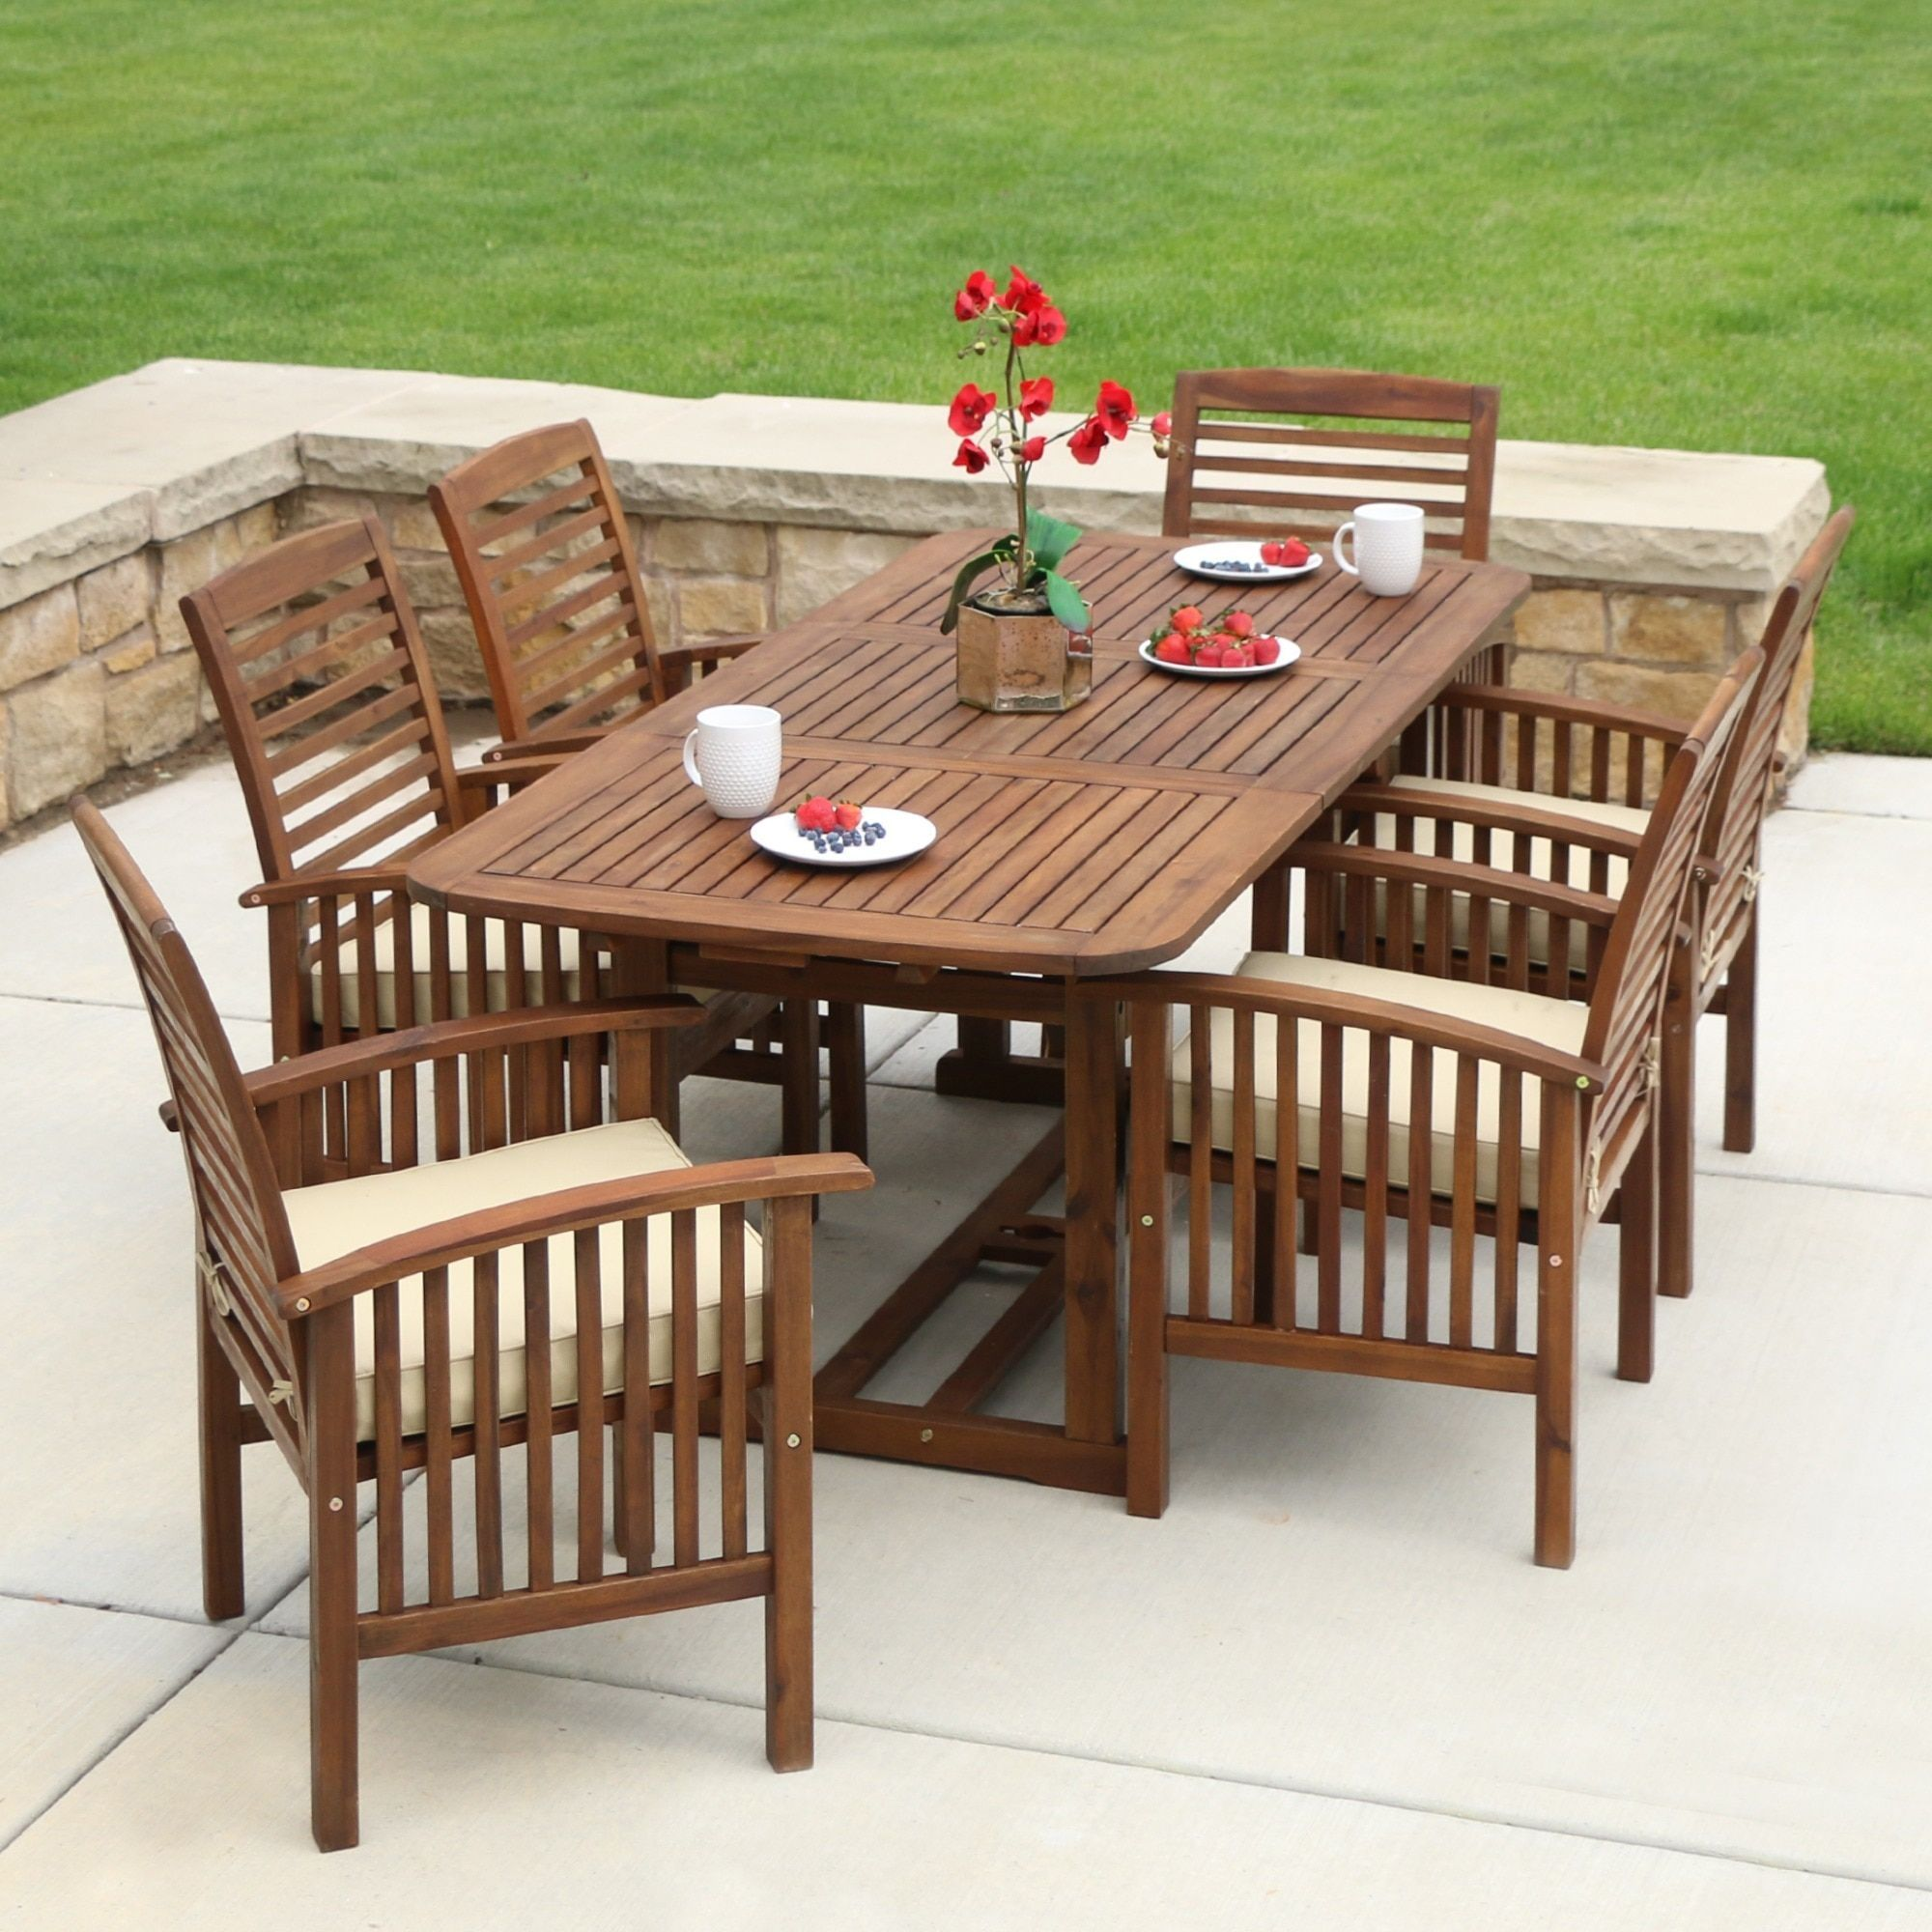 7 piece acacia wood patio dining set brown size 7 piece sets patio furniture